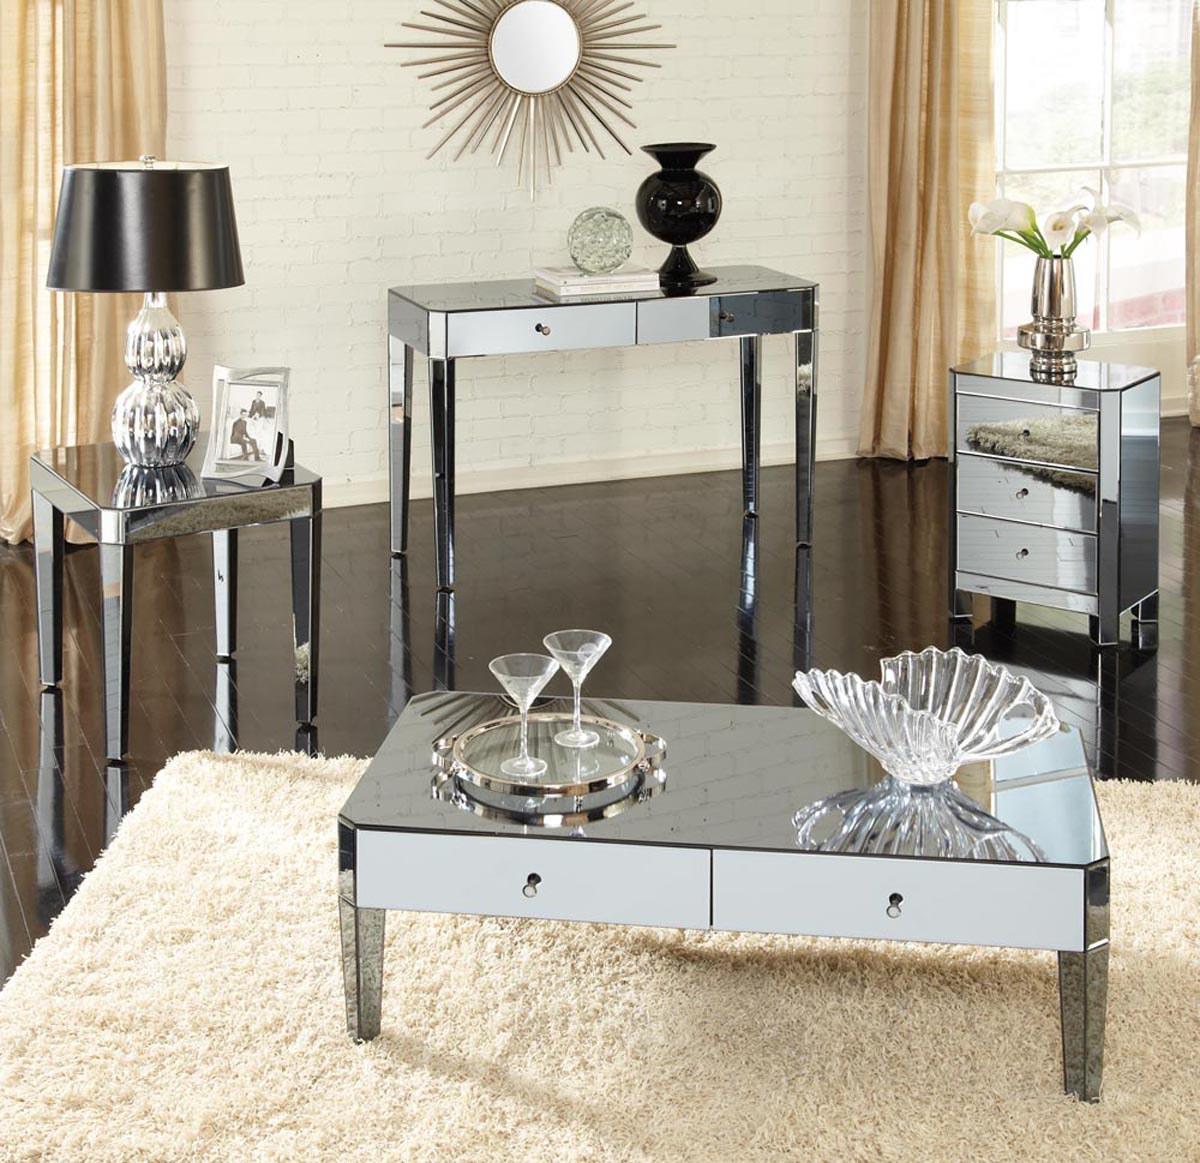 Mirrored Coffee Table Tray